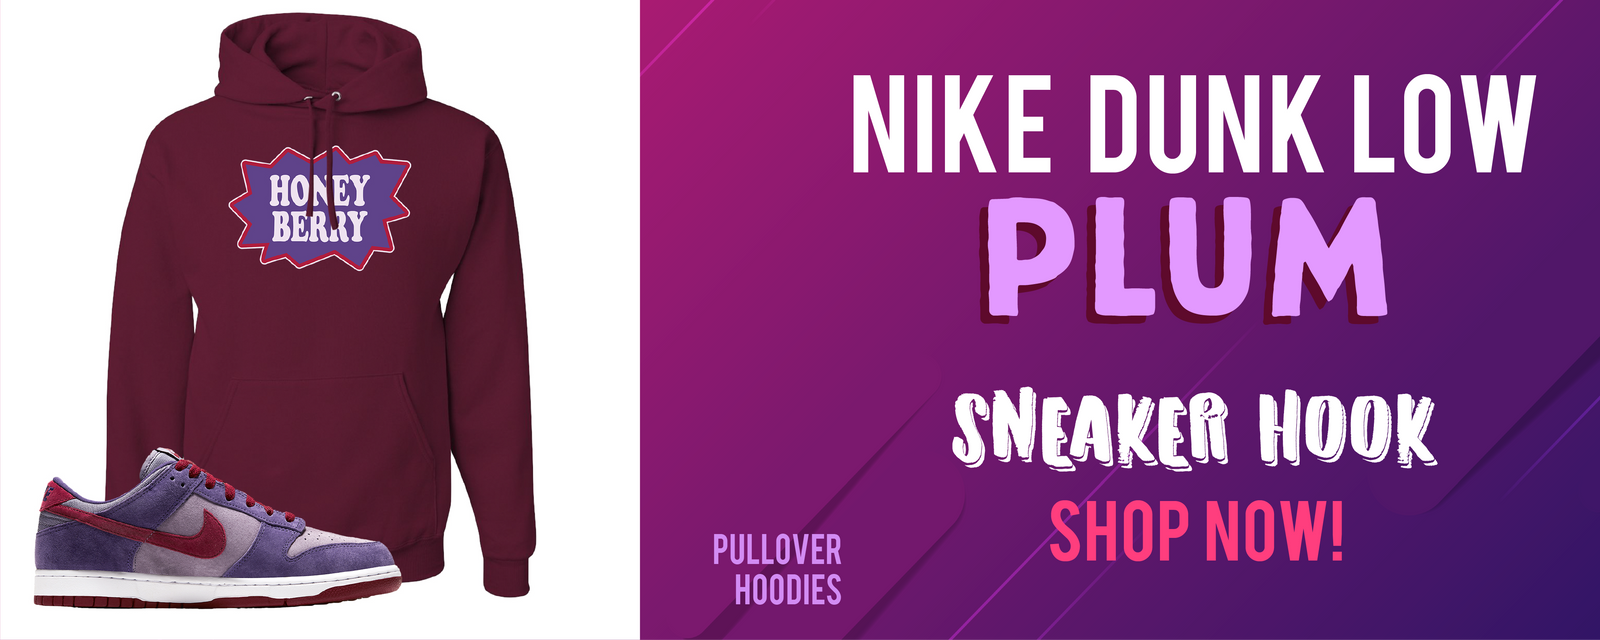 Nike Dunk Low Plum Pullover Hoodies to match Sneakers | Hoodies to match Nike Dunk Low Plum Shoes